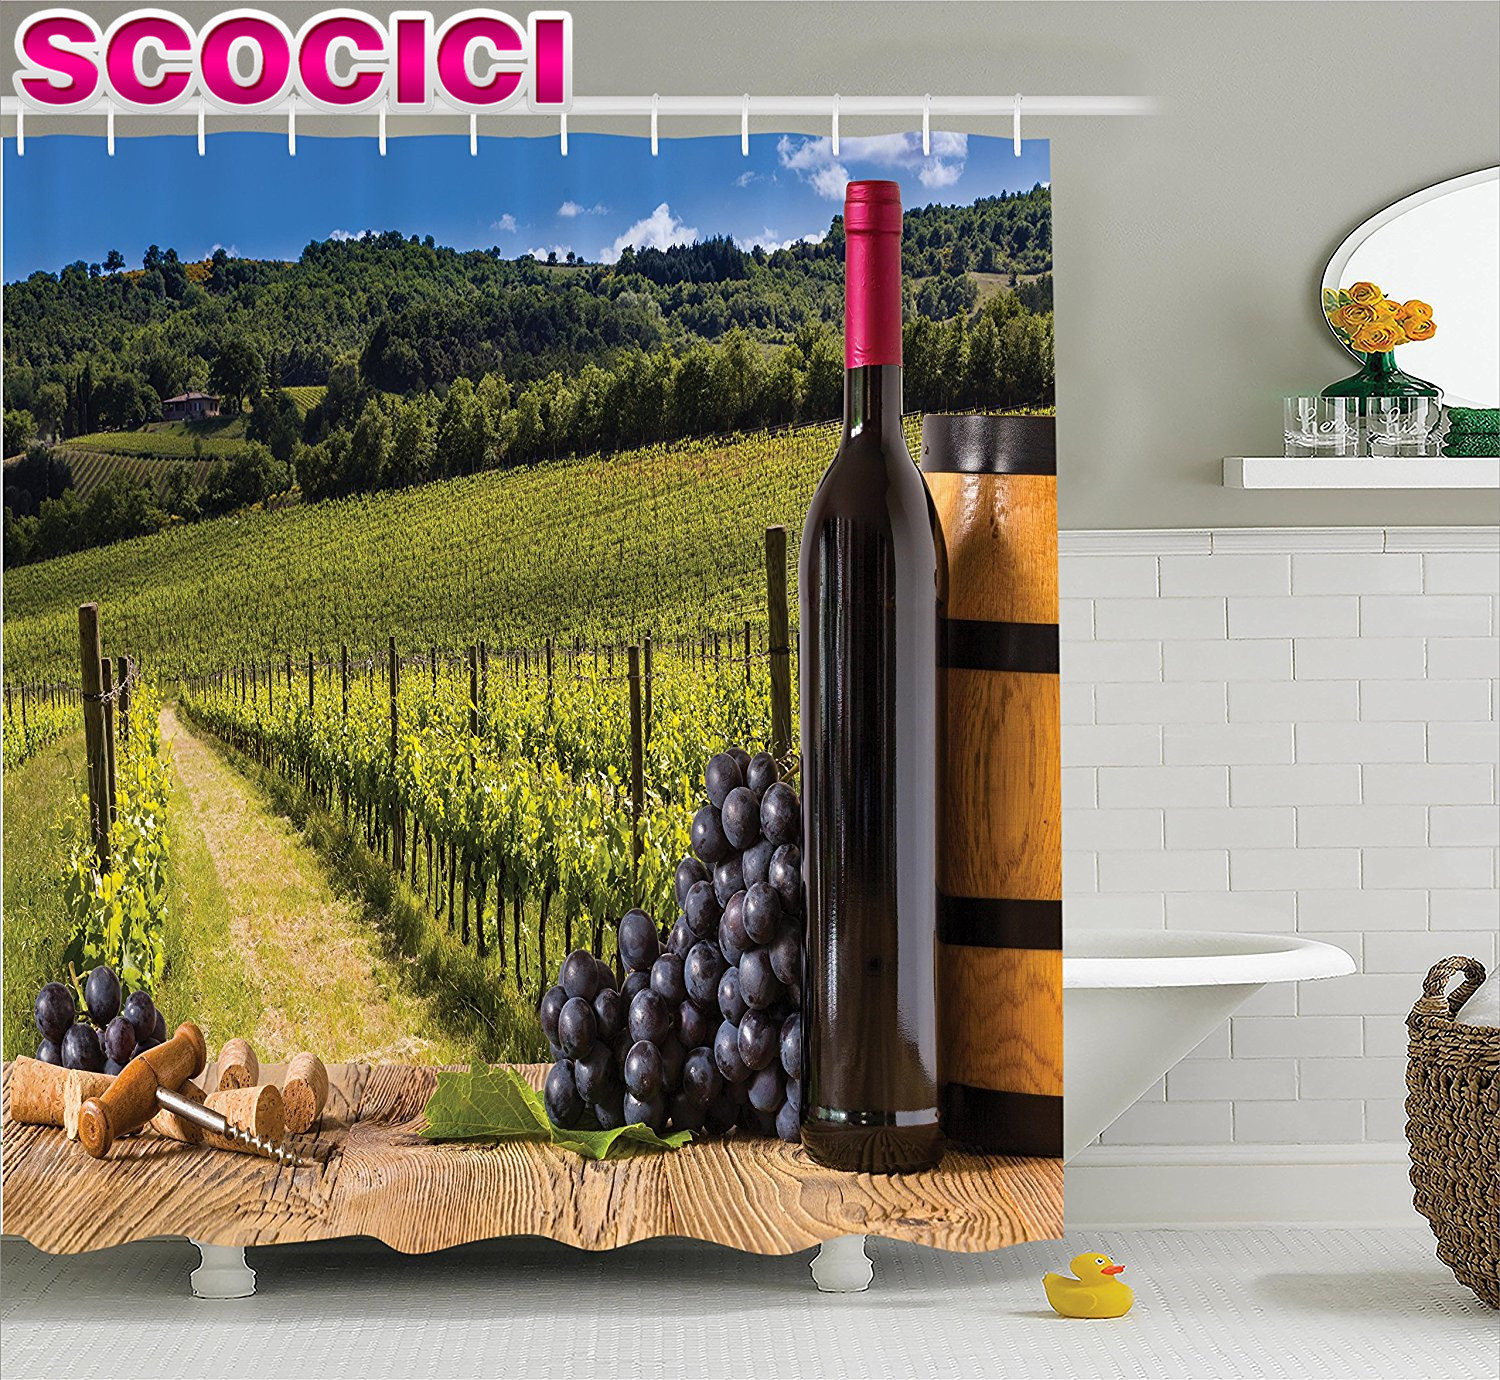 Bathroom Wall Sticker Quote Deep Bath Gl Of Wine Decor Decal With Bubbles